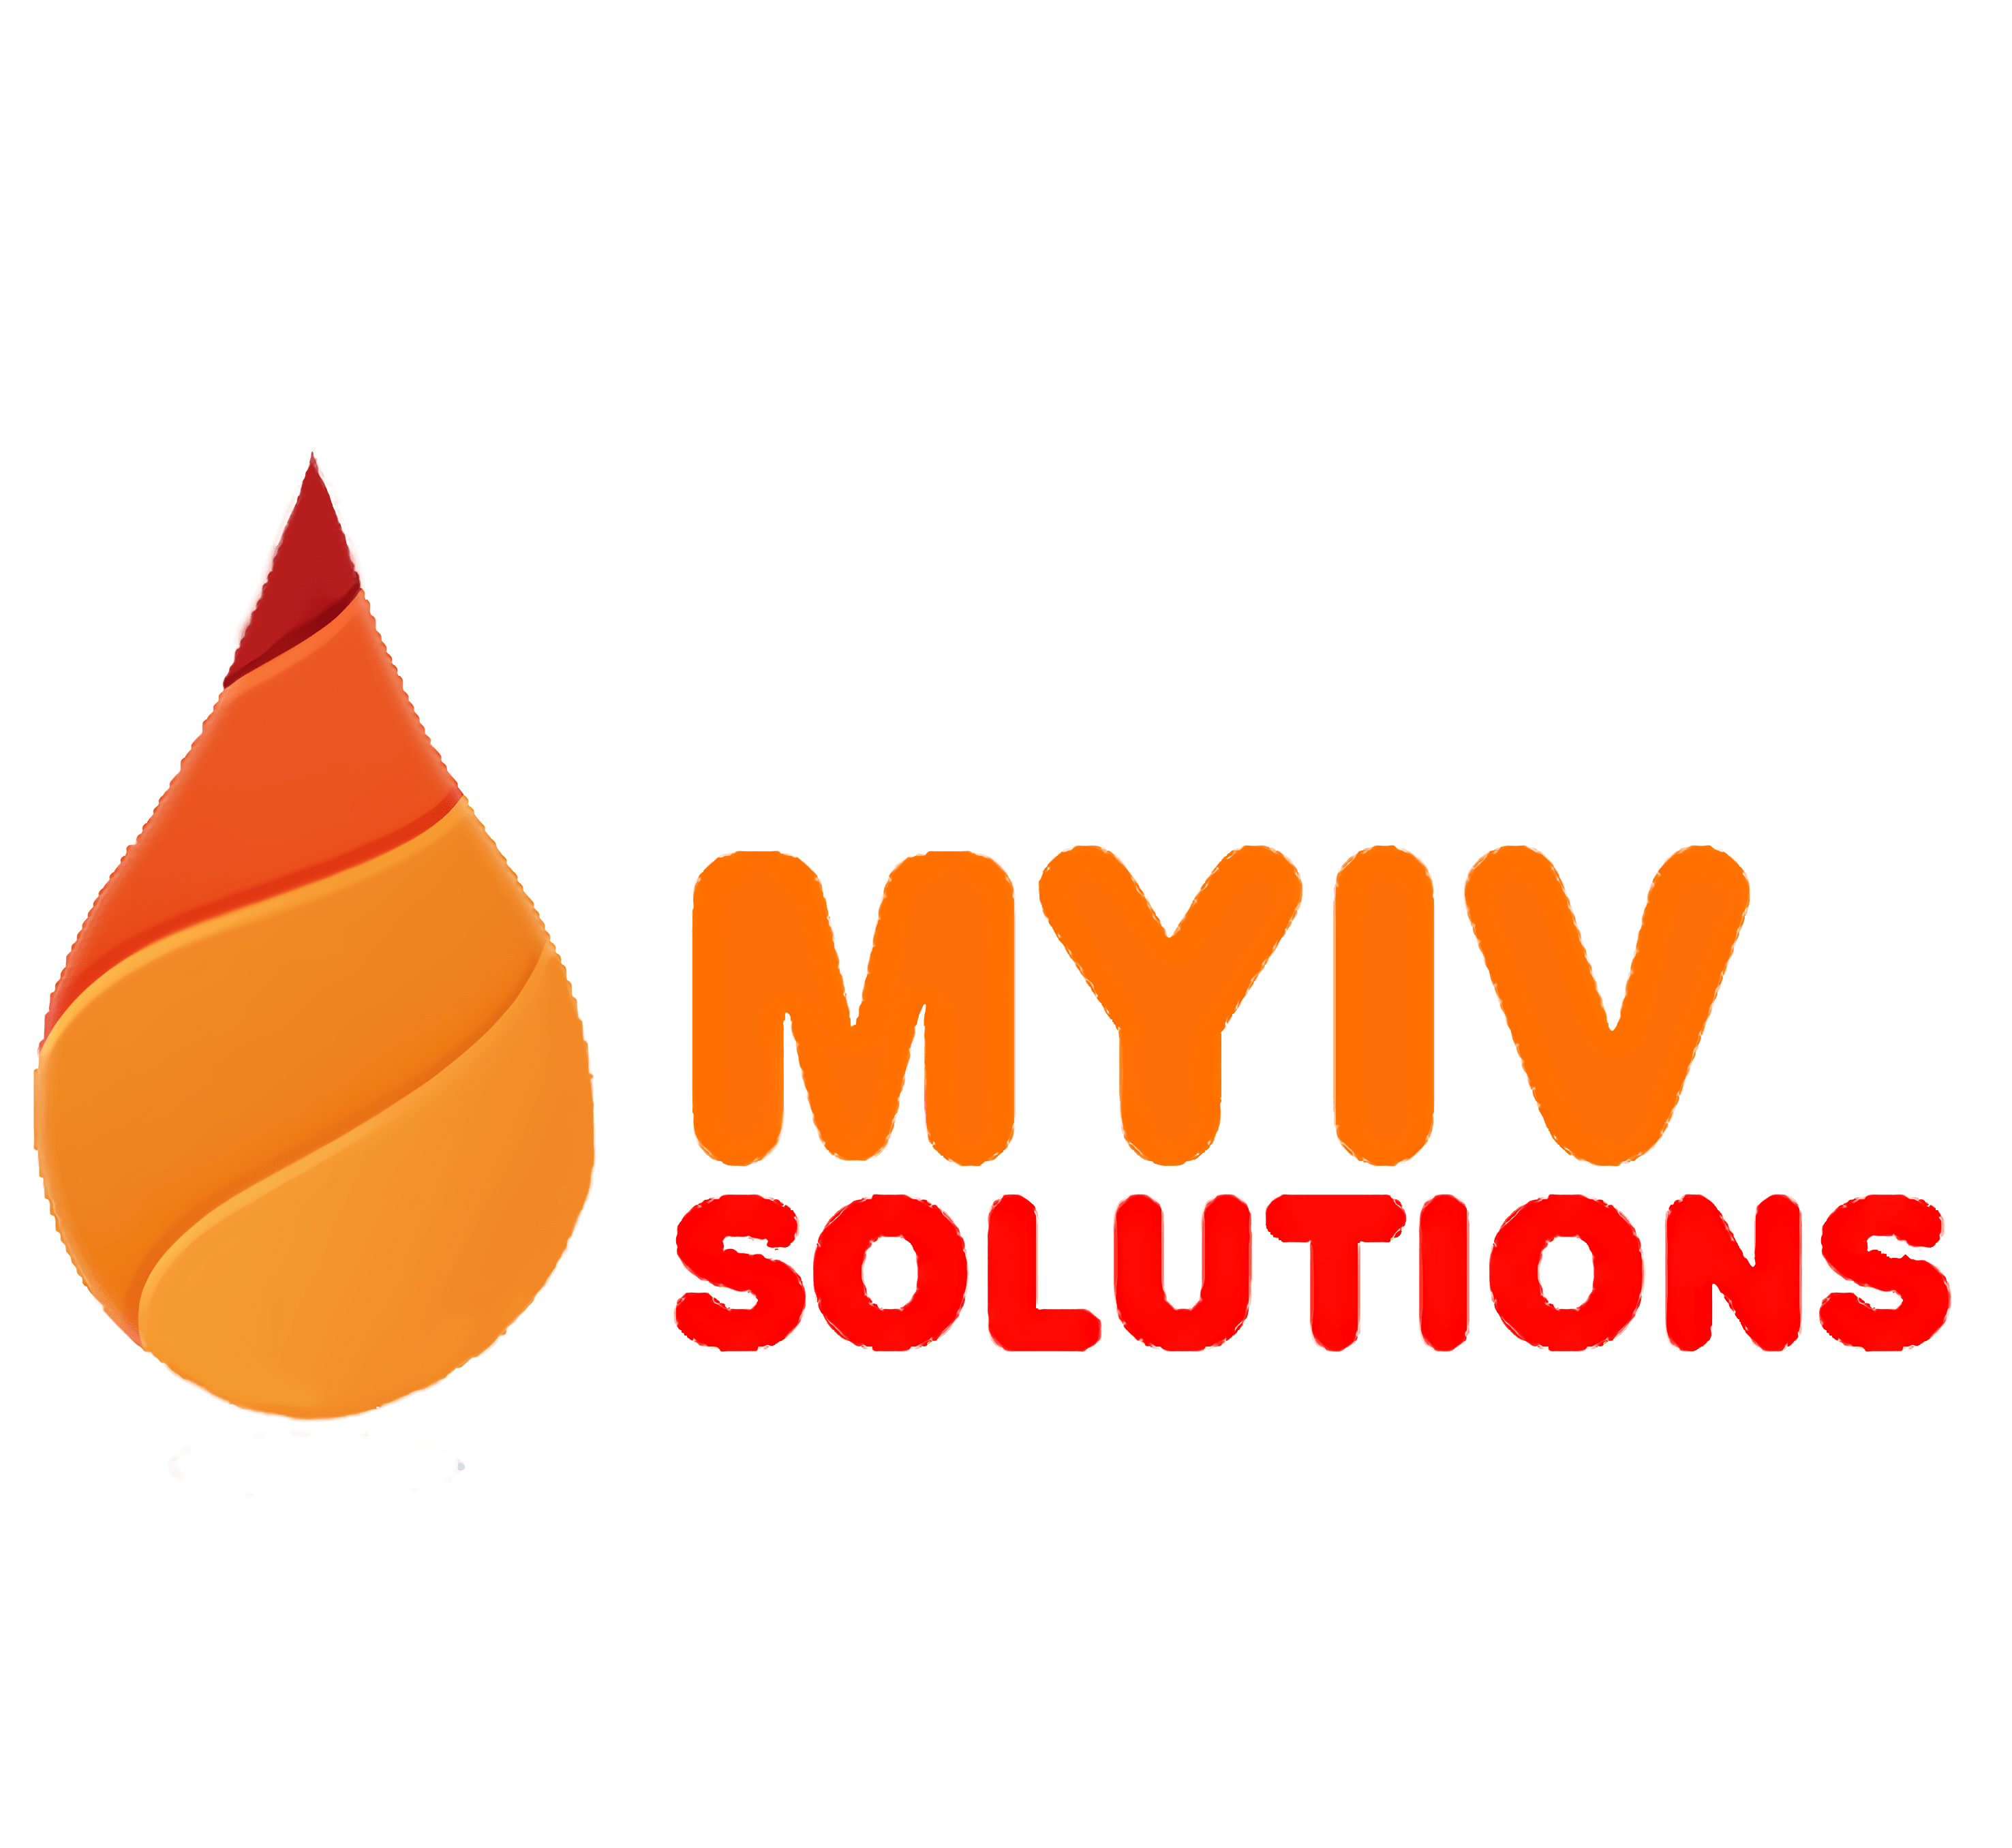 MY IV SOLUTIONS – IV THERAPY